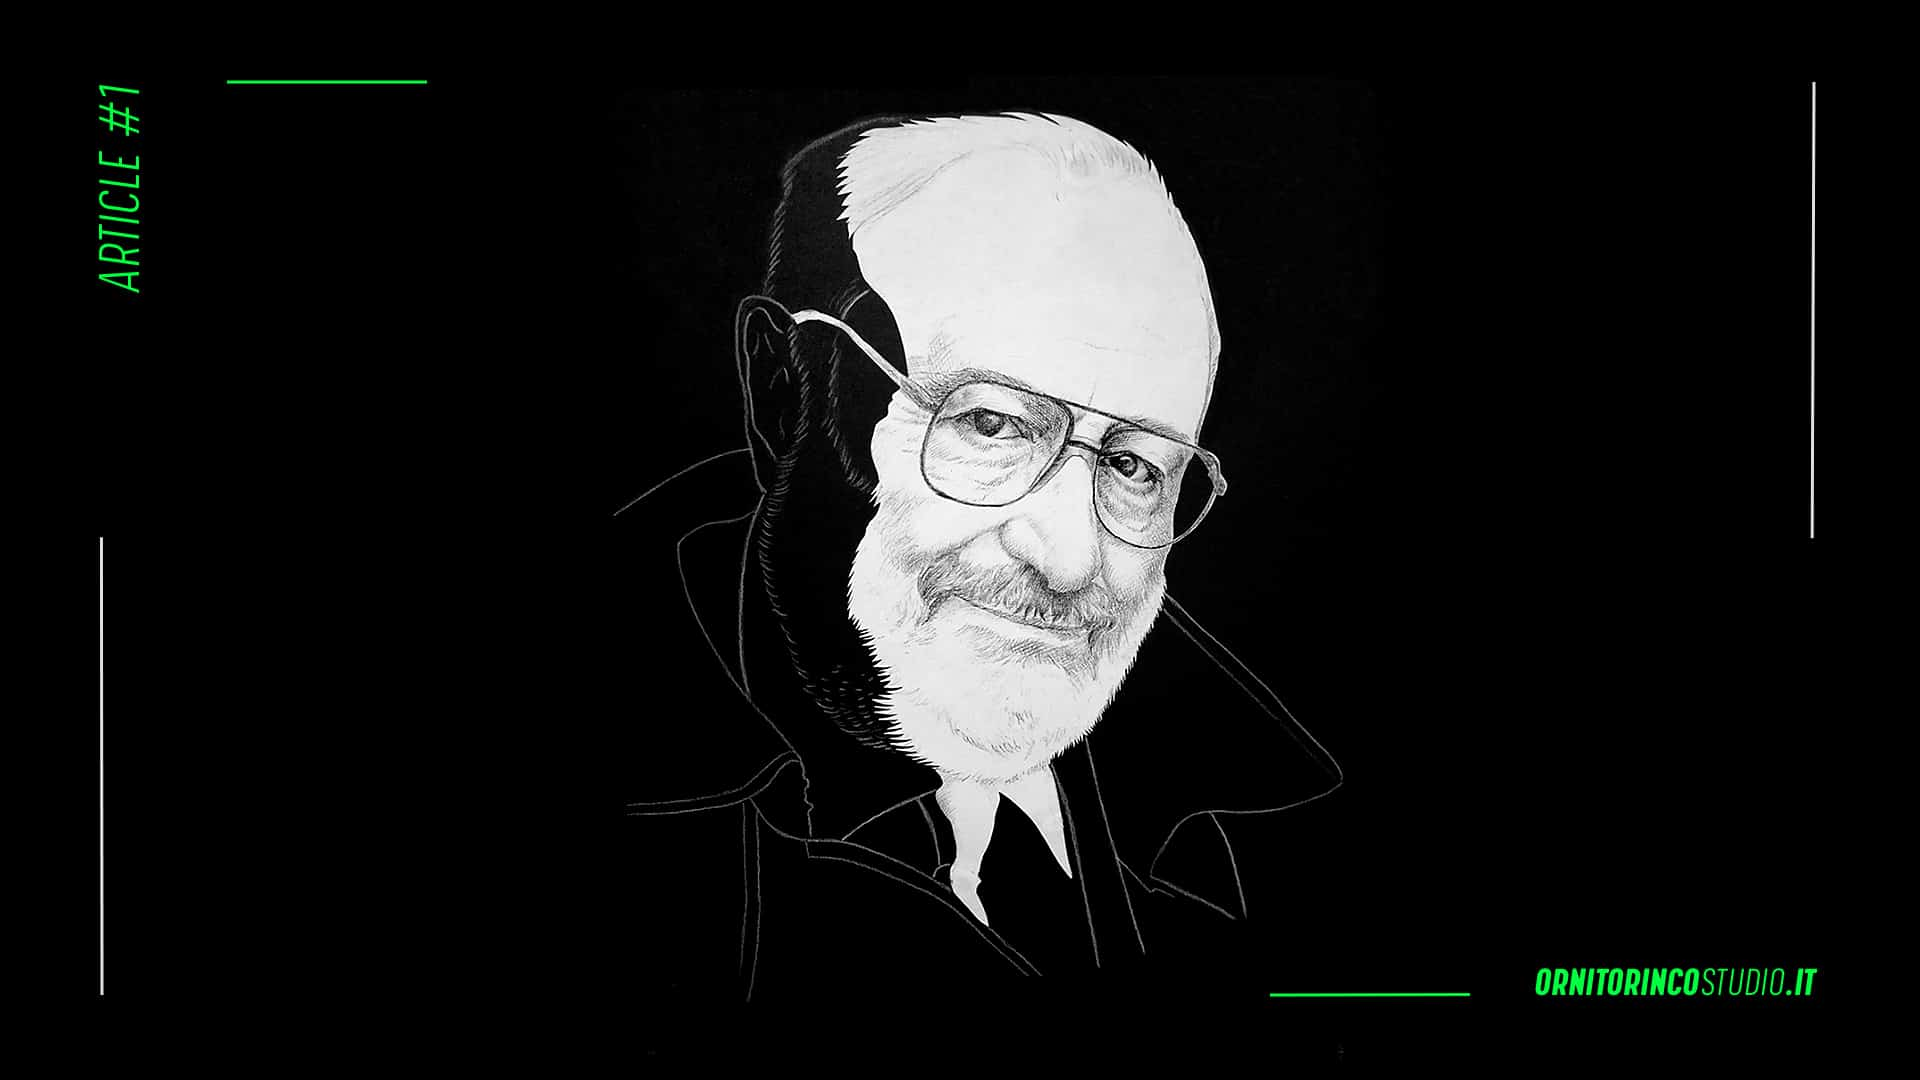 ornitorinco-studio-blog-semiotica-umberto eco